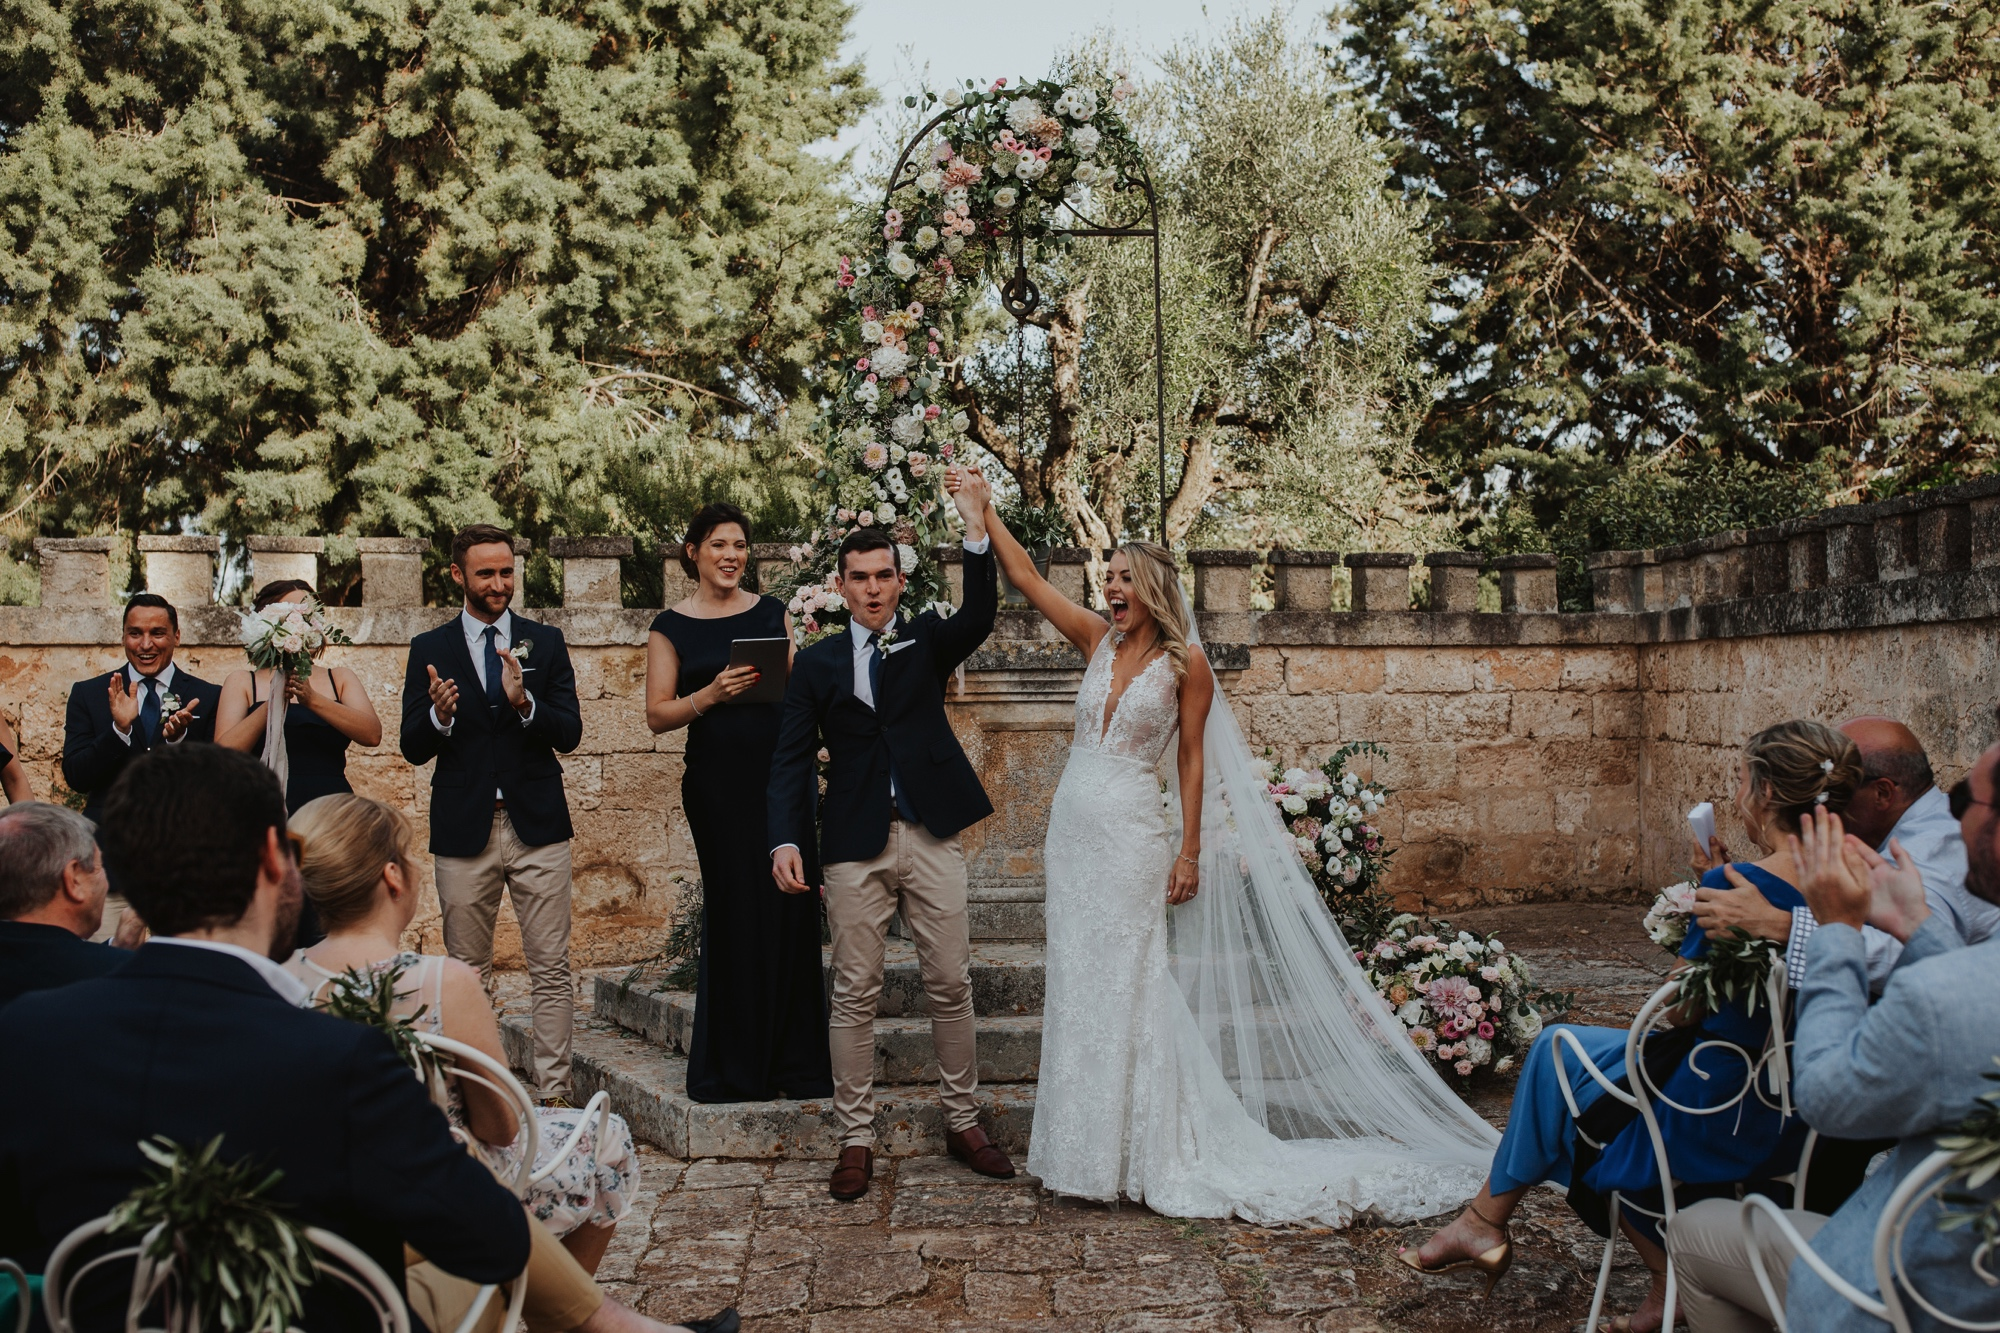 0000000043_Rob and Lucy-404_Weddings_Destination_Italy_got_Just_Engaged.jpg